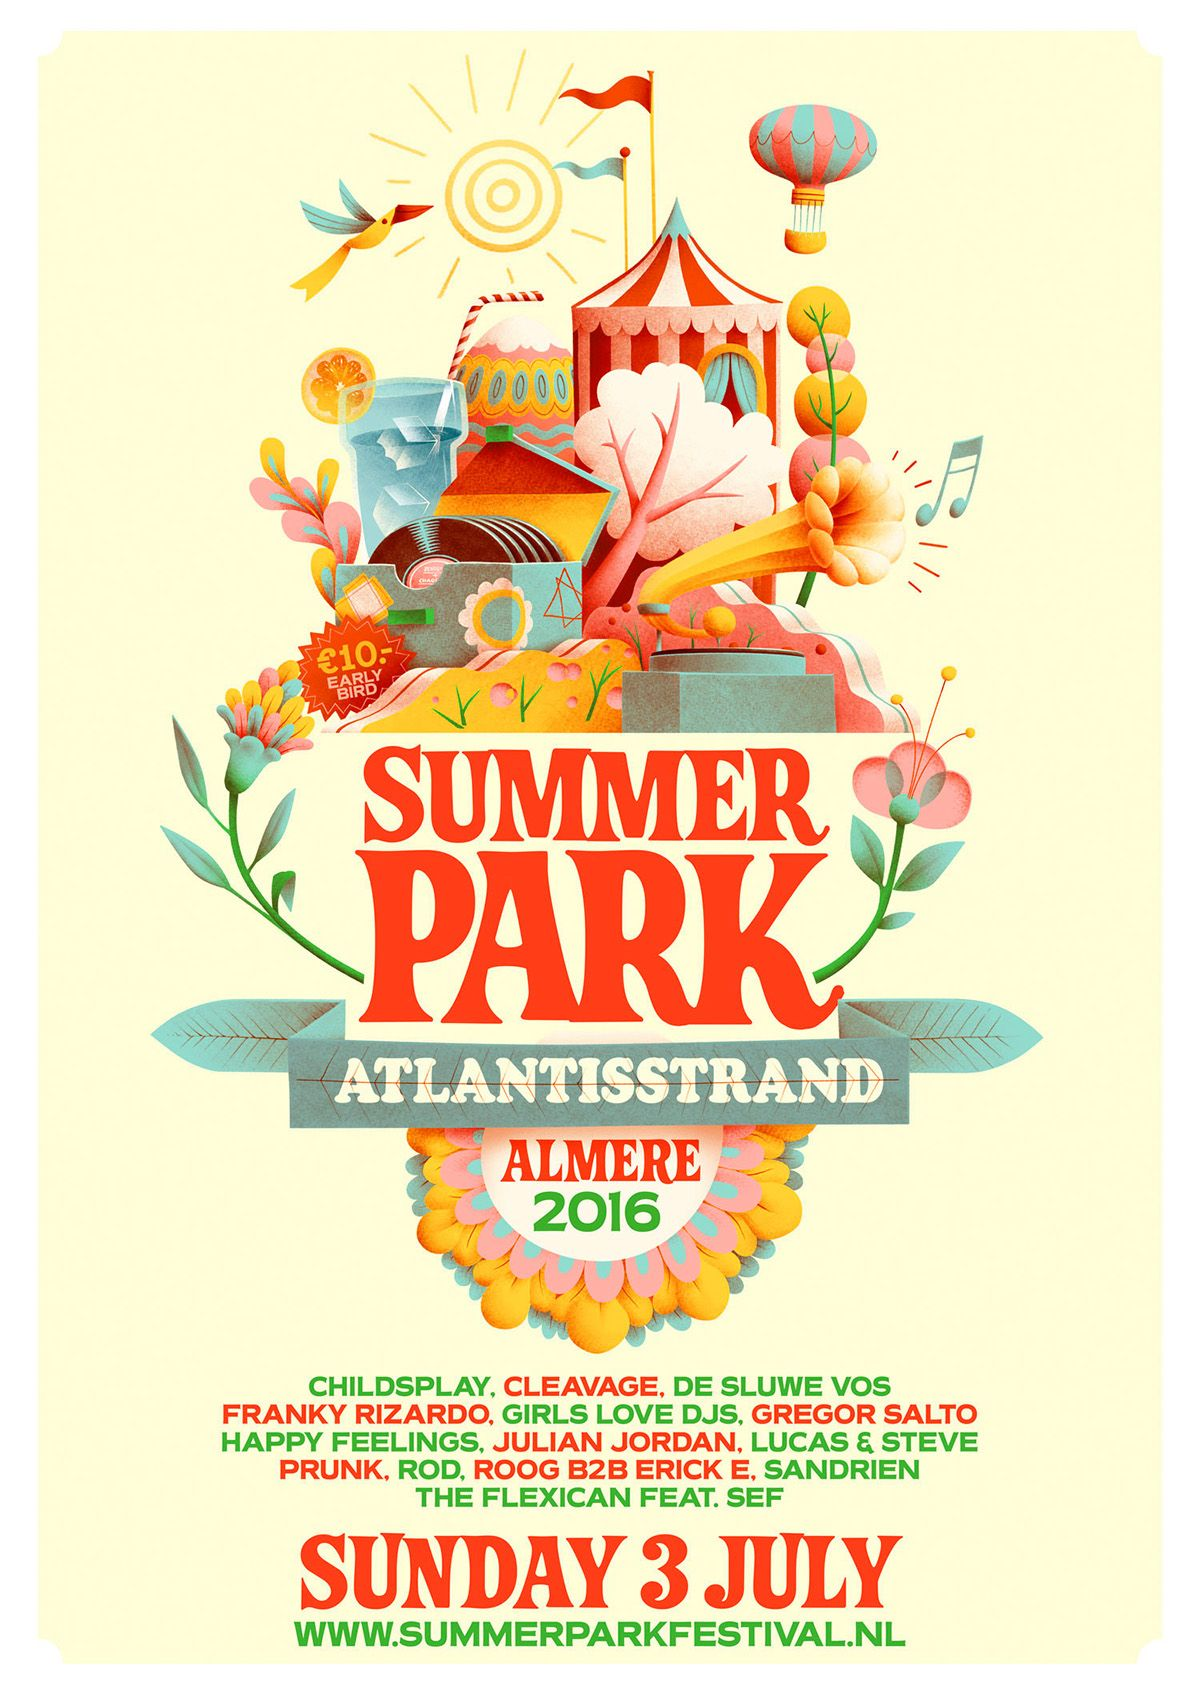 artwork for a new festival in almere  a city close by